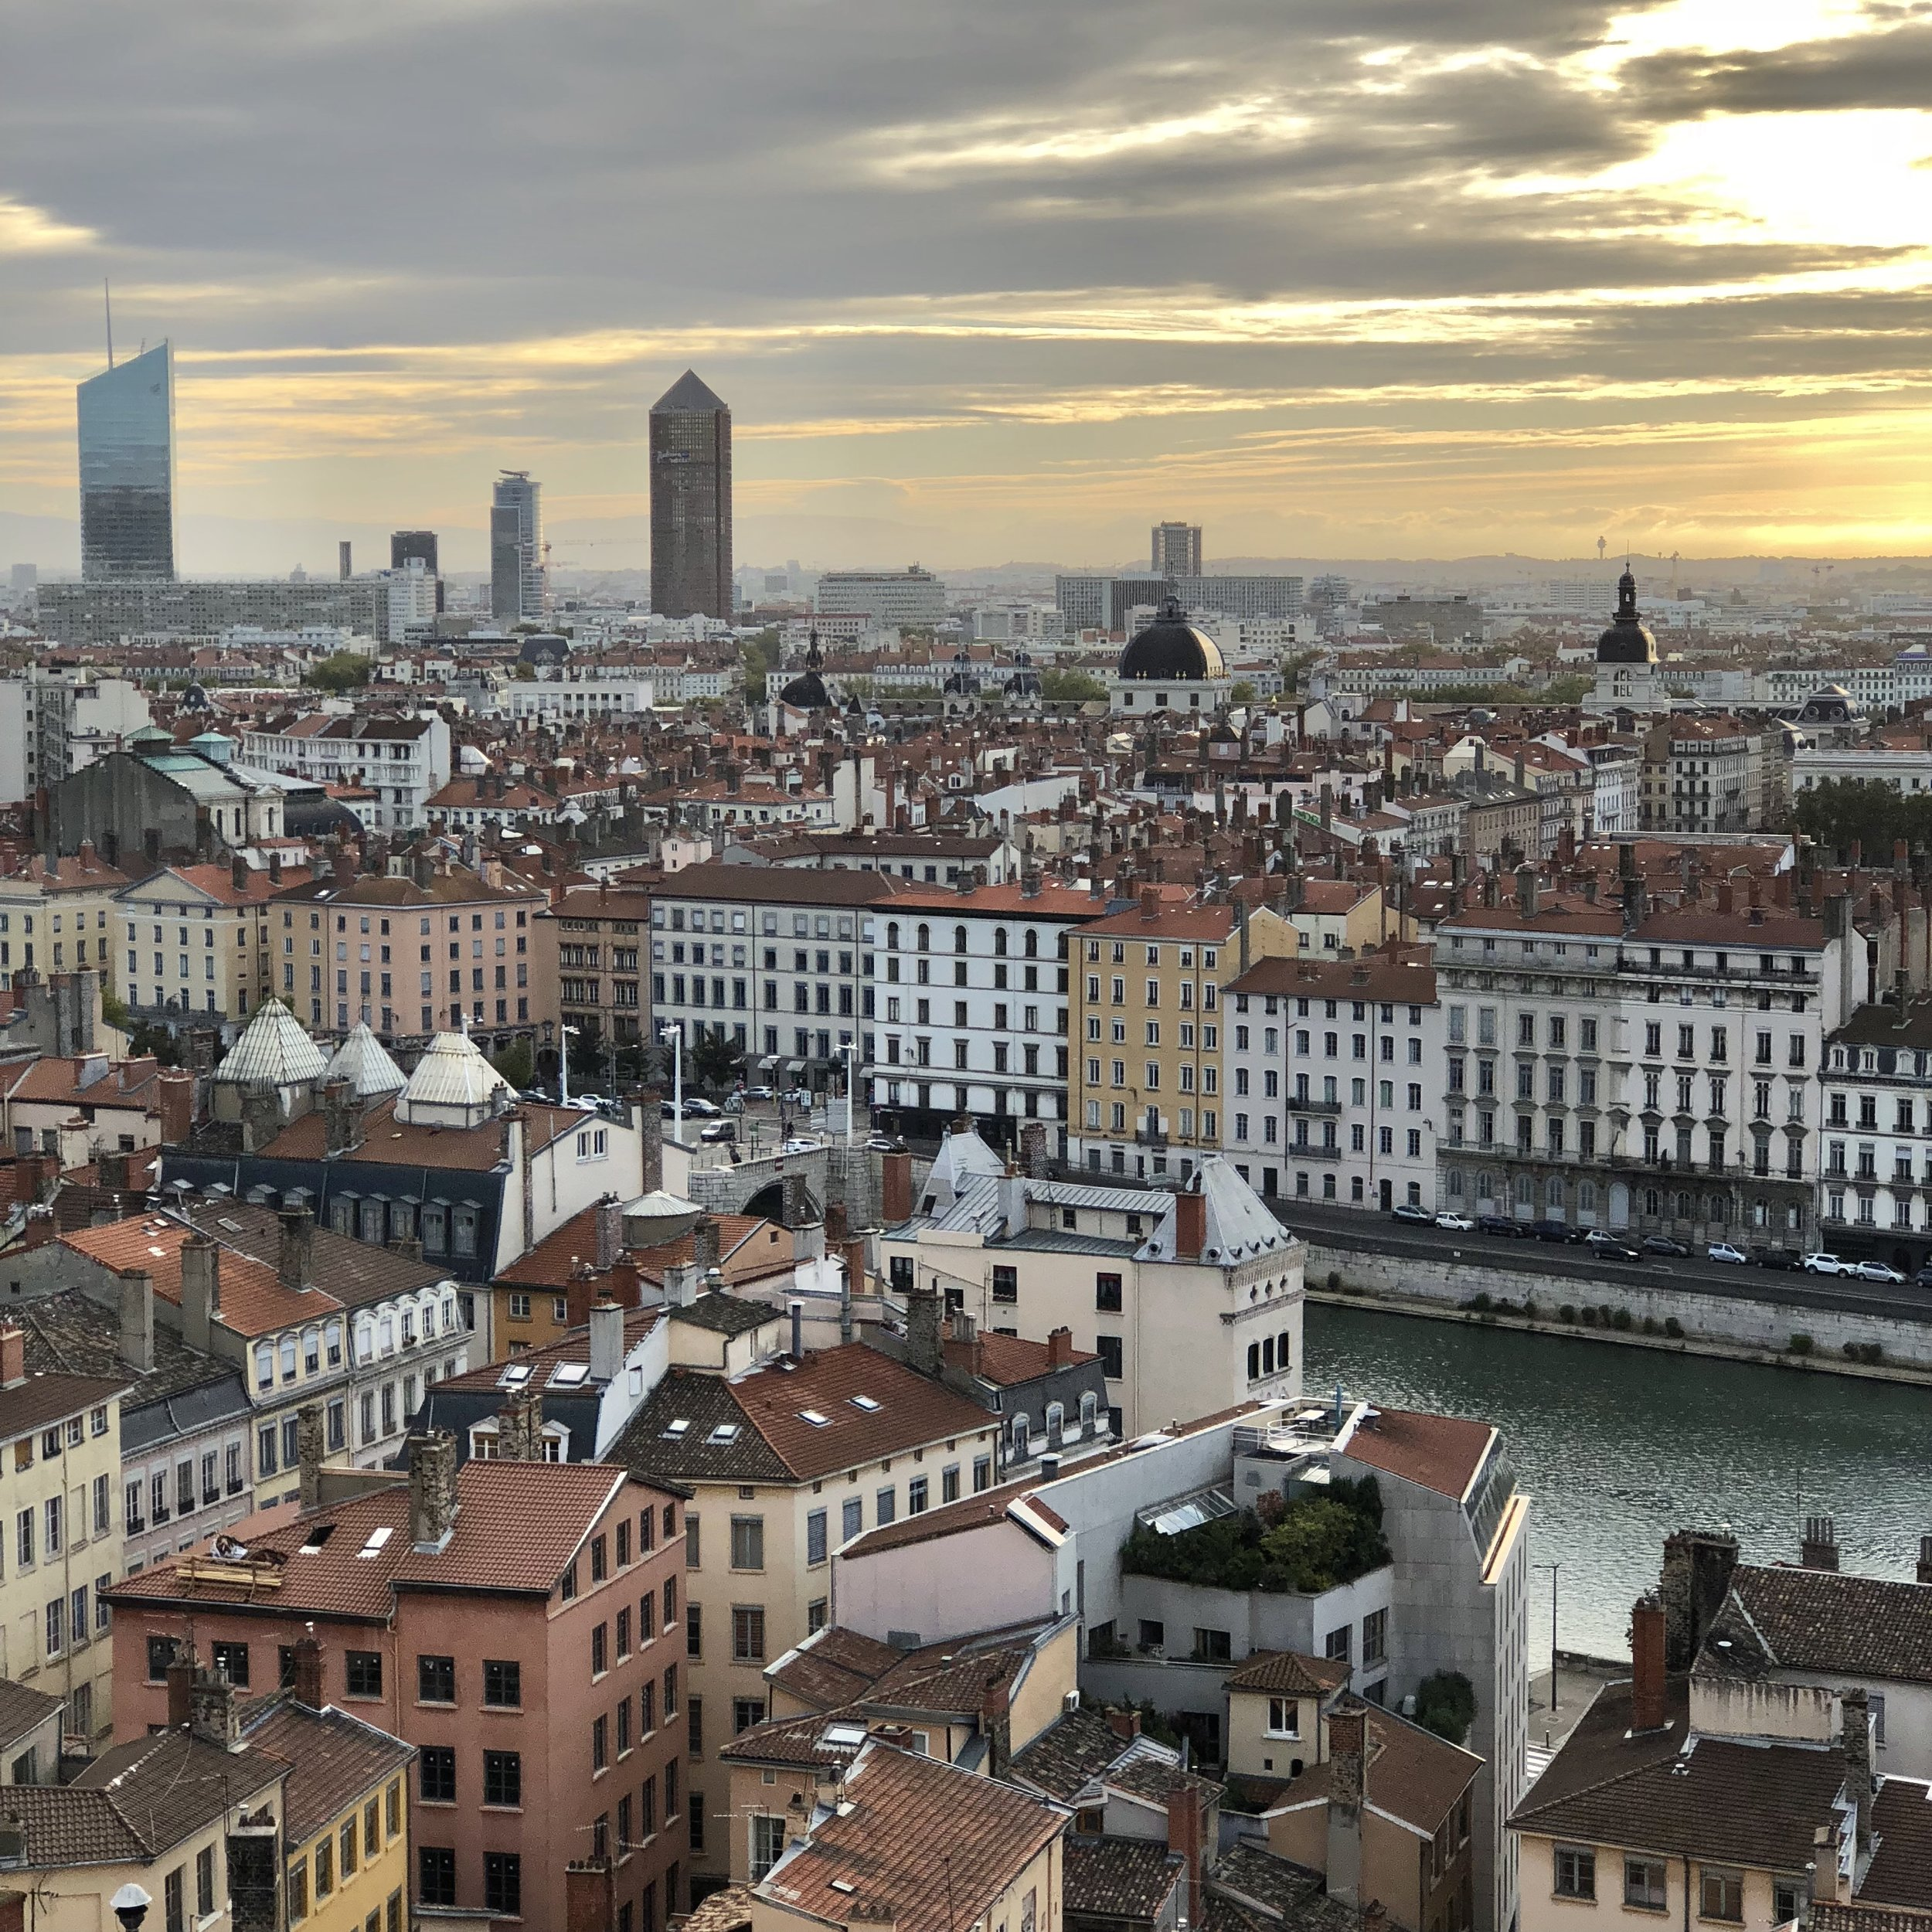 Morning view over Vieux Lyon, the Saone, the Presqu'île, and the skyline